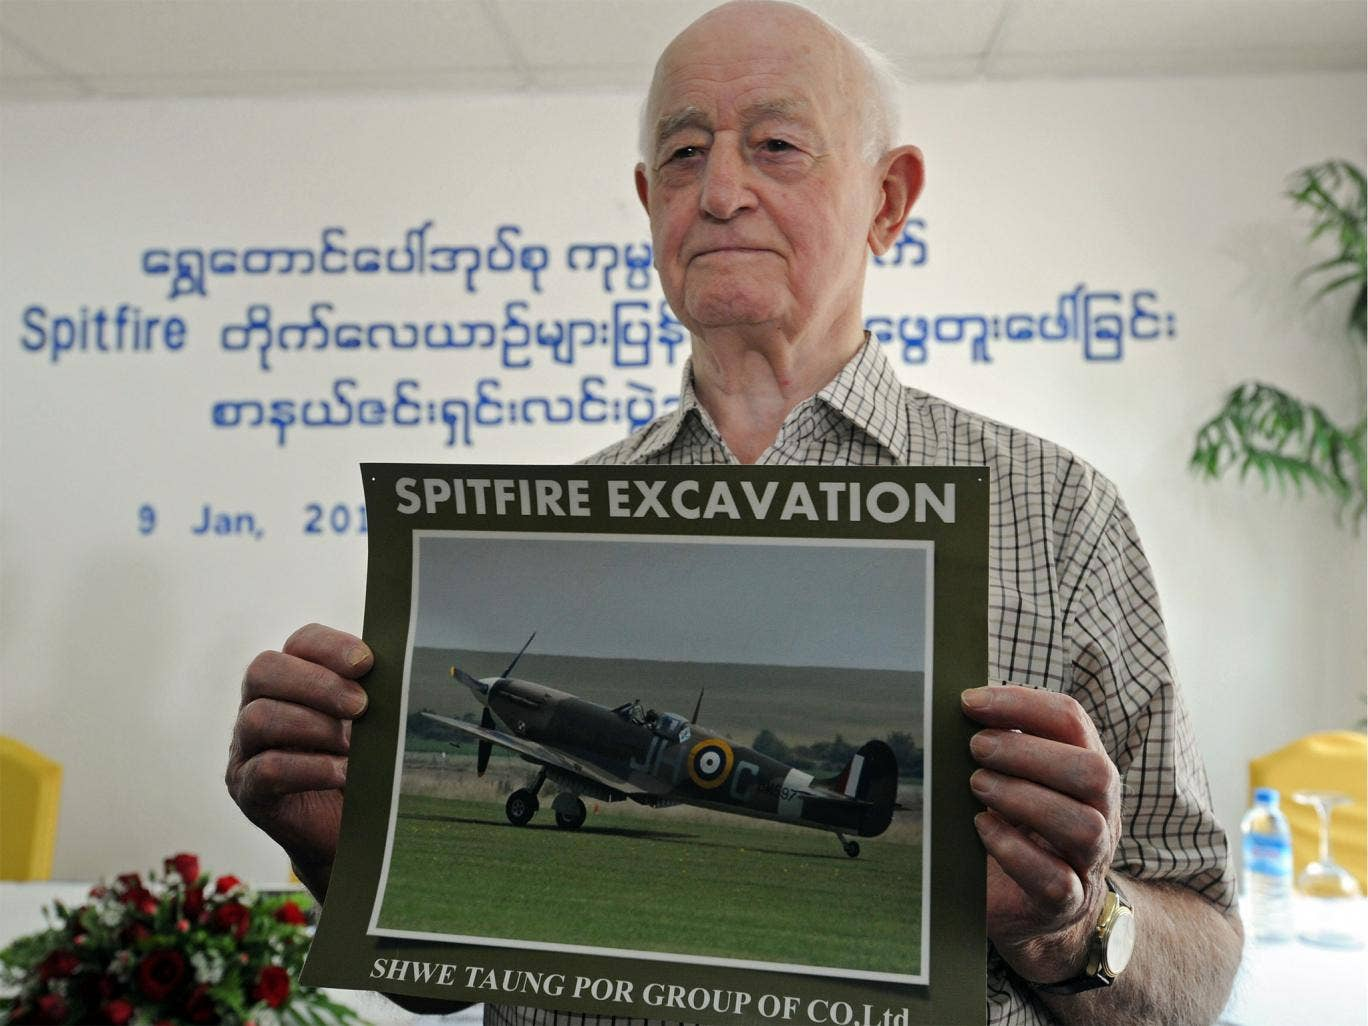 Stanley Coombe, a 91-year-old former British soldier, poses with a photo of a Spitfire